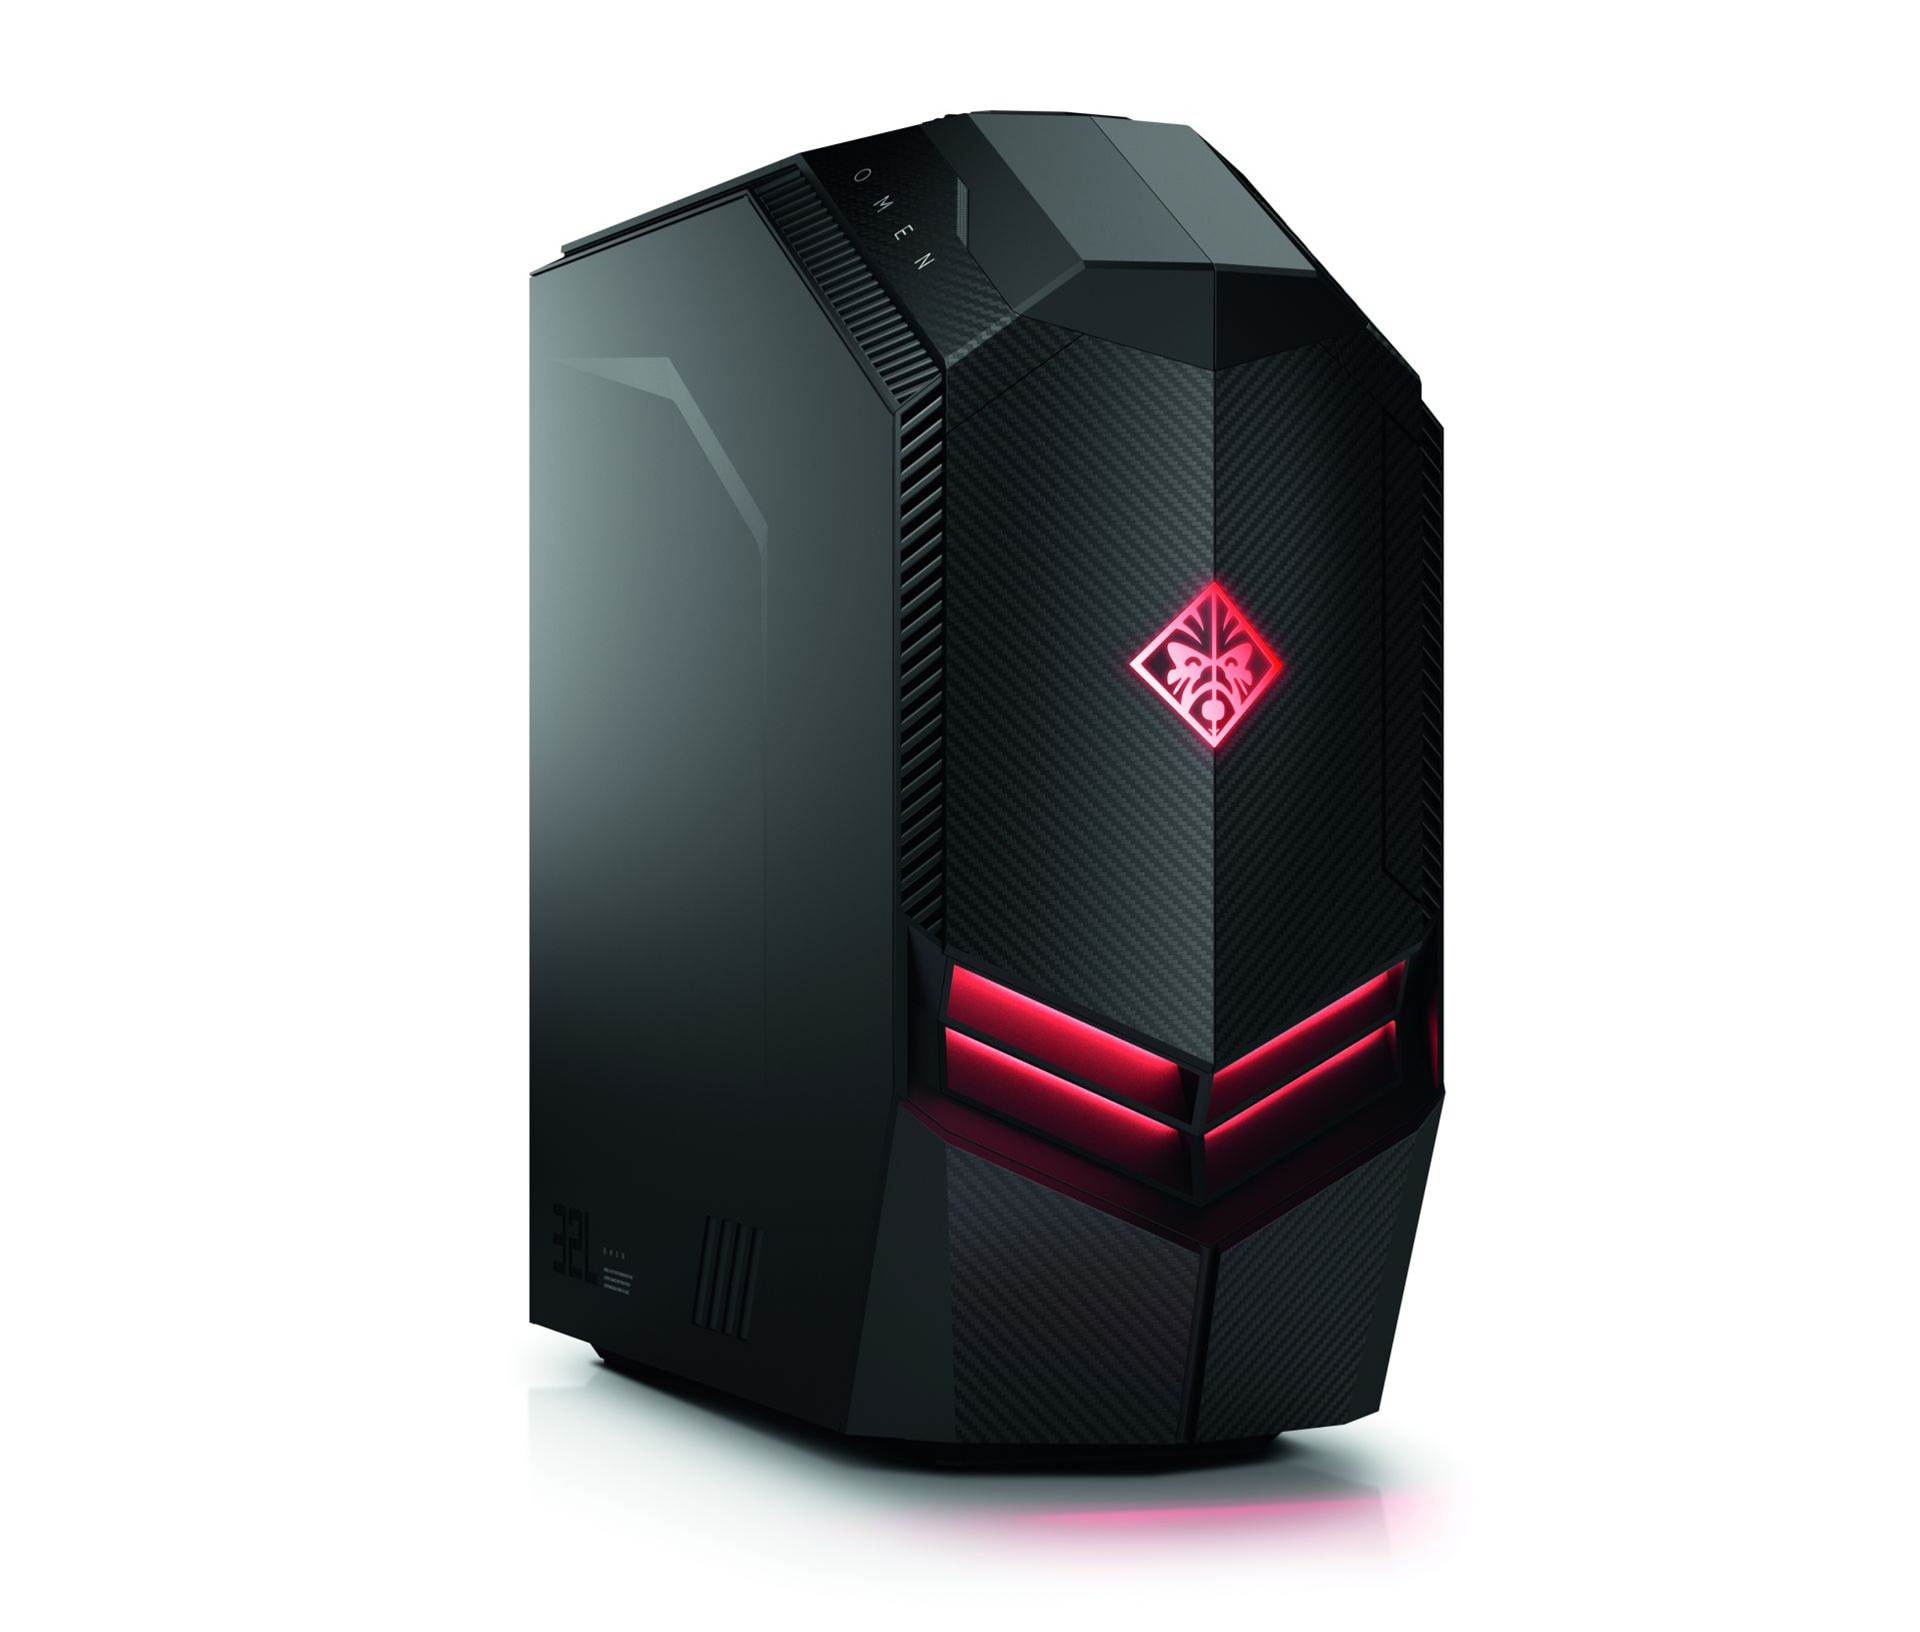 Review: HP Omen 880-062a desktop gaming PC